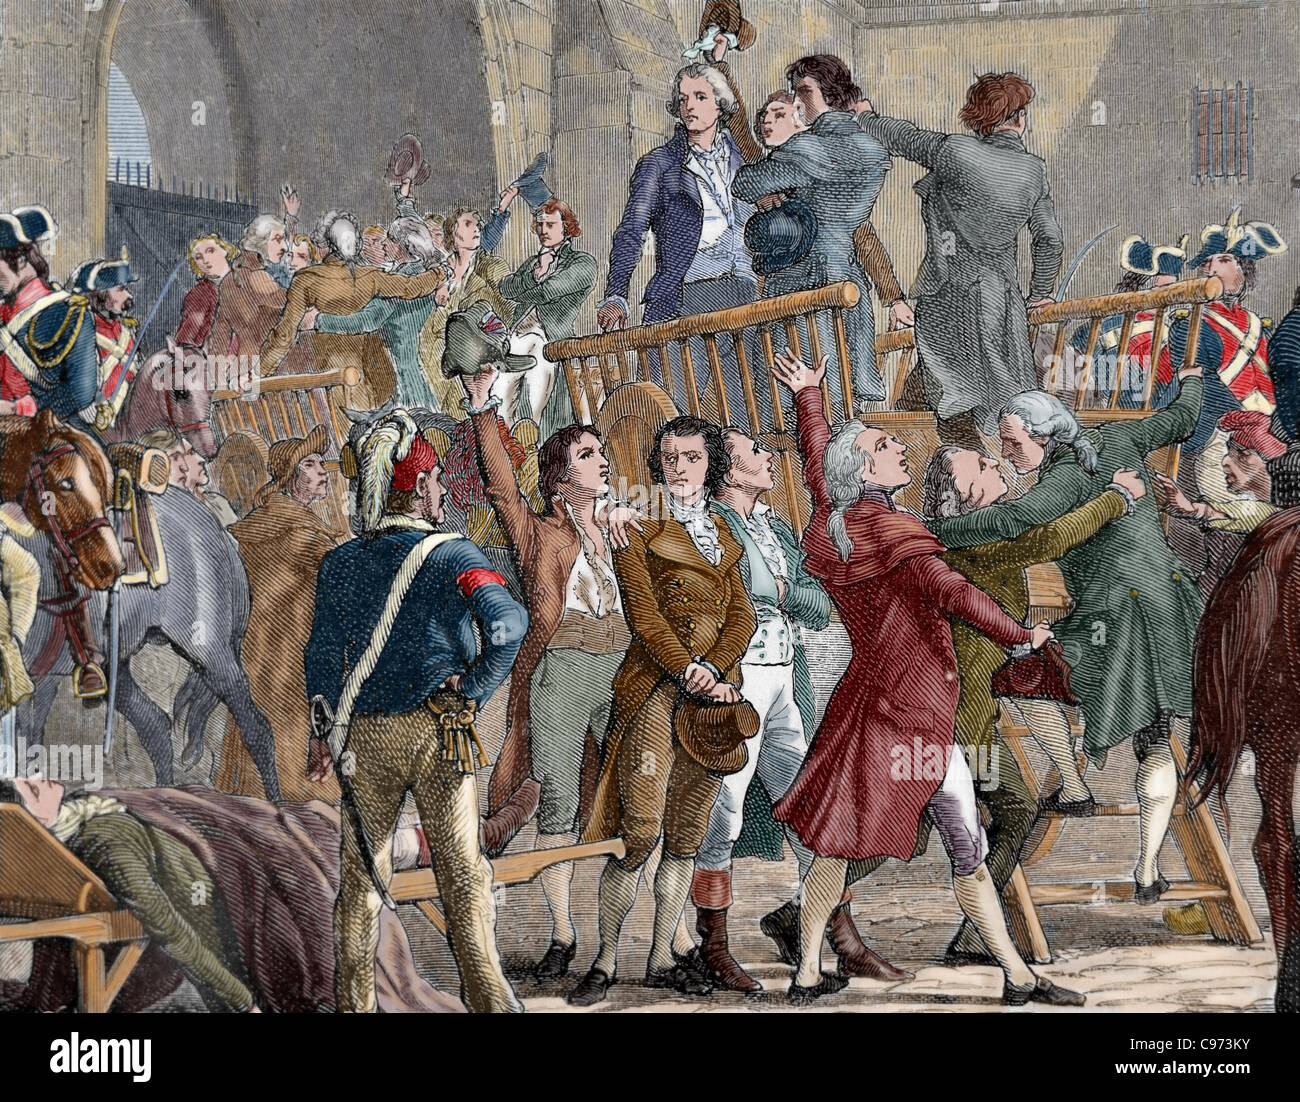 French Revolution (1789). The Girondists out of jail to go to the gallows. Colored engraving. - Stock Image